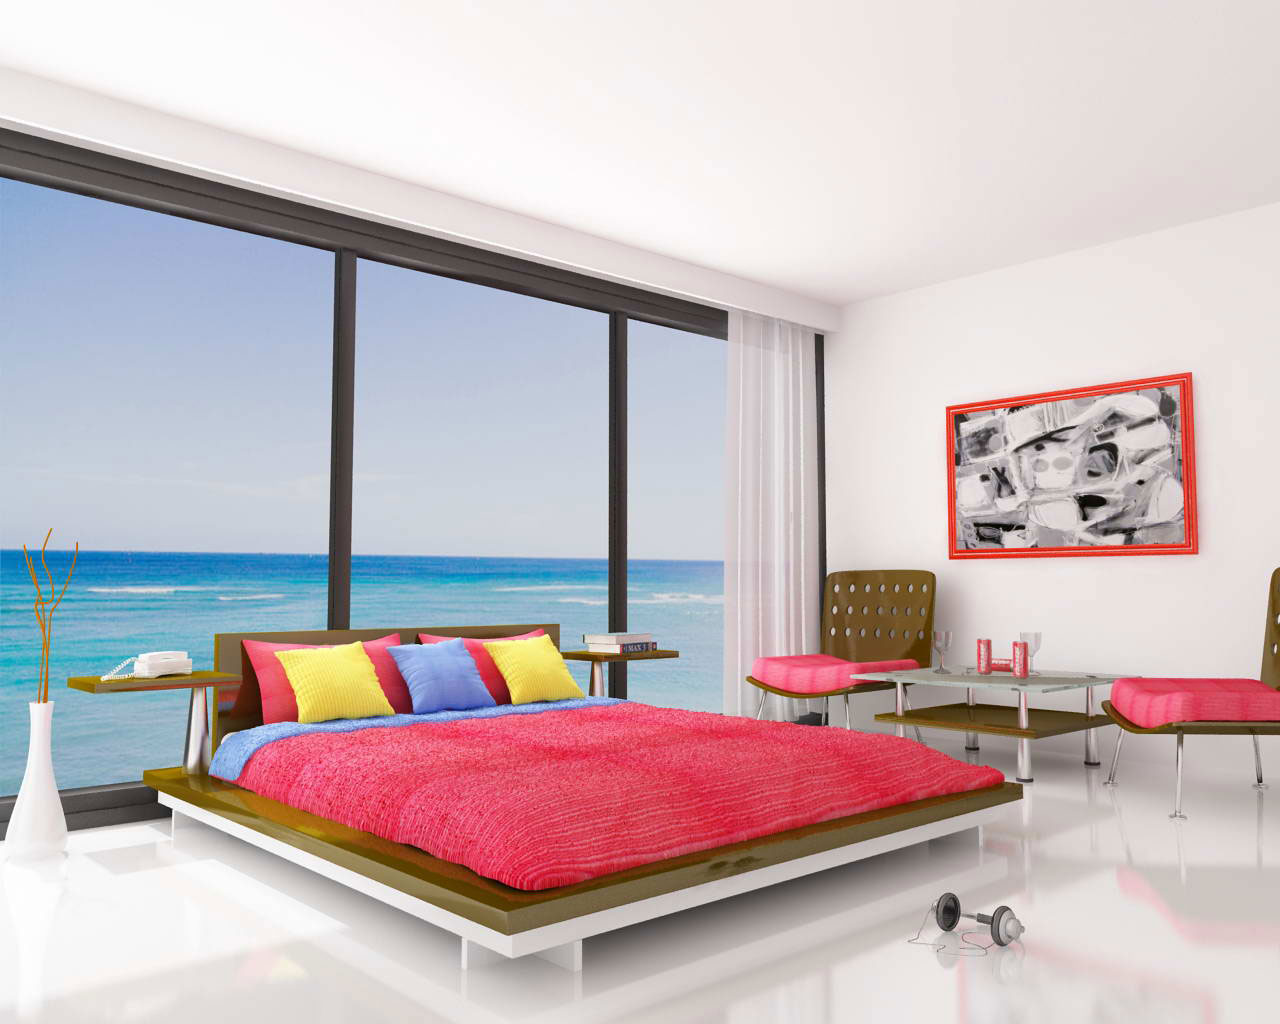 Simple Bedroom Designs For Square Rooms | Dream House ... on Basic Room Ideas  id=54905